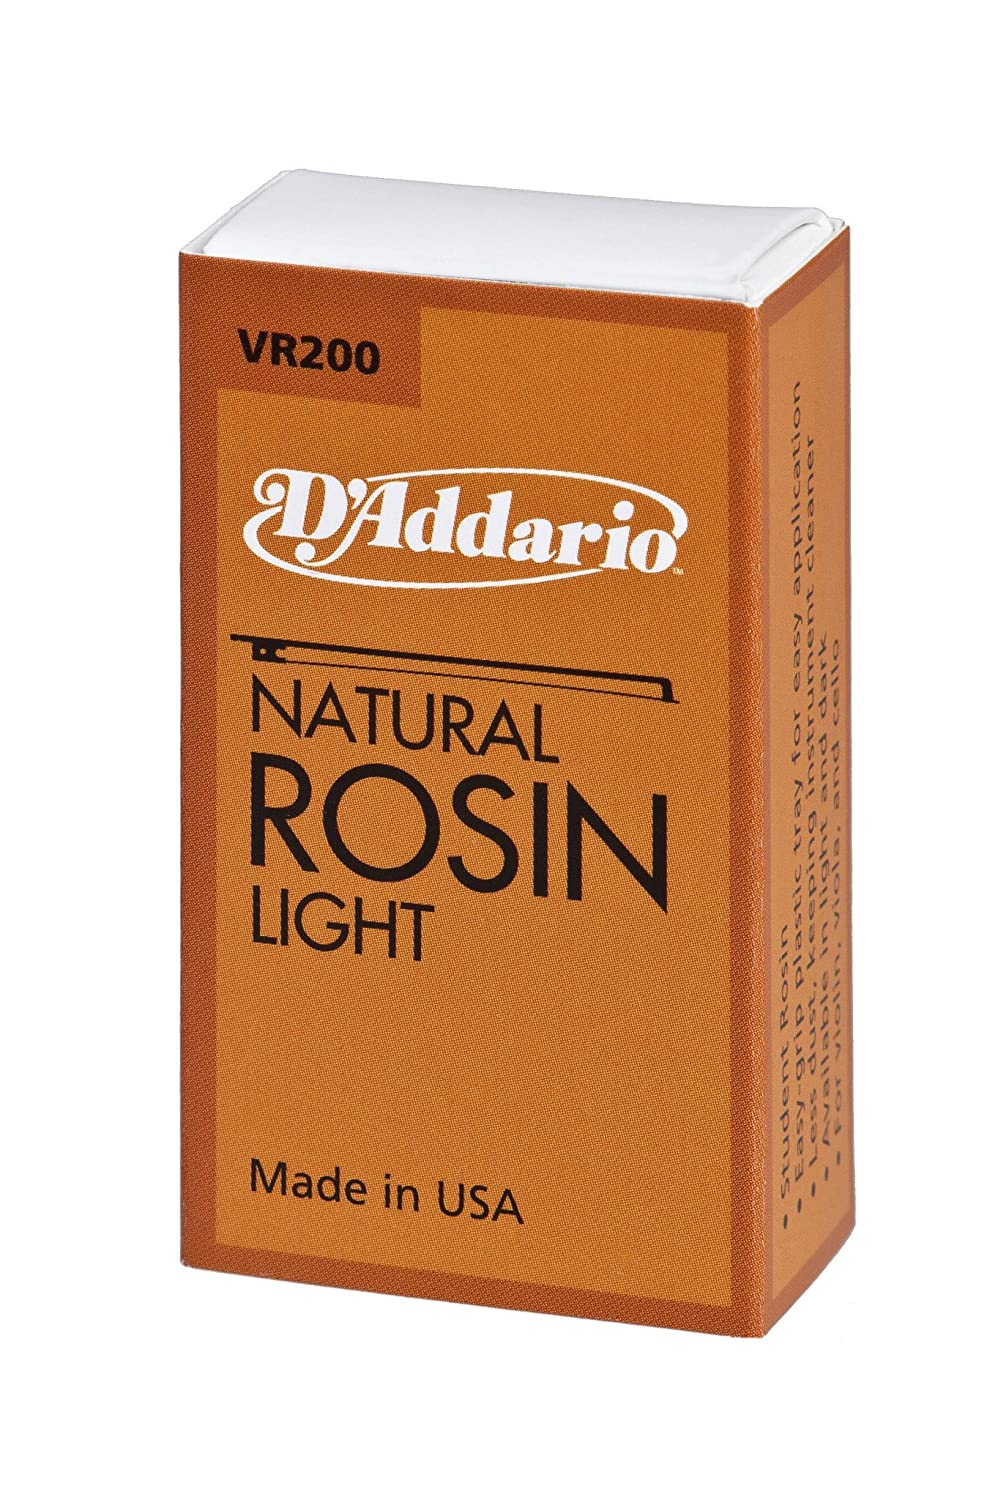 D'Addario Natural Rosin, Light for violin